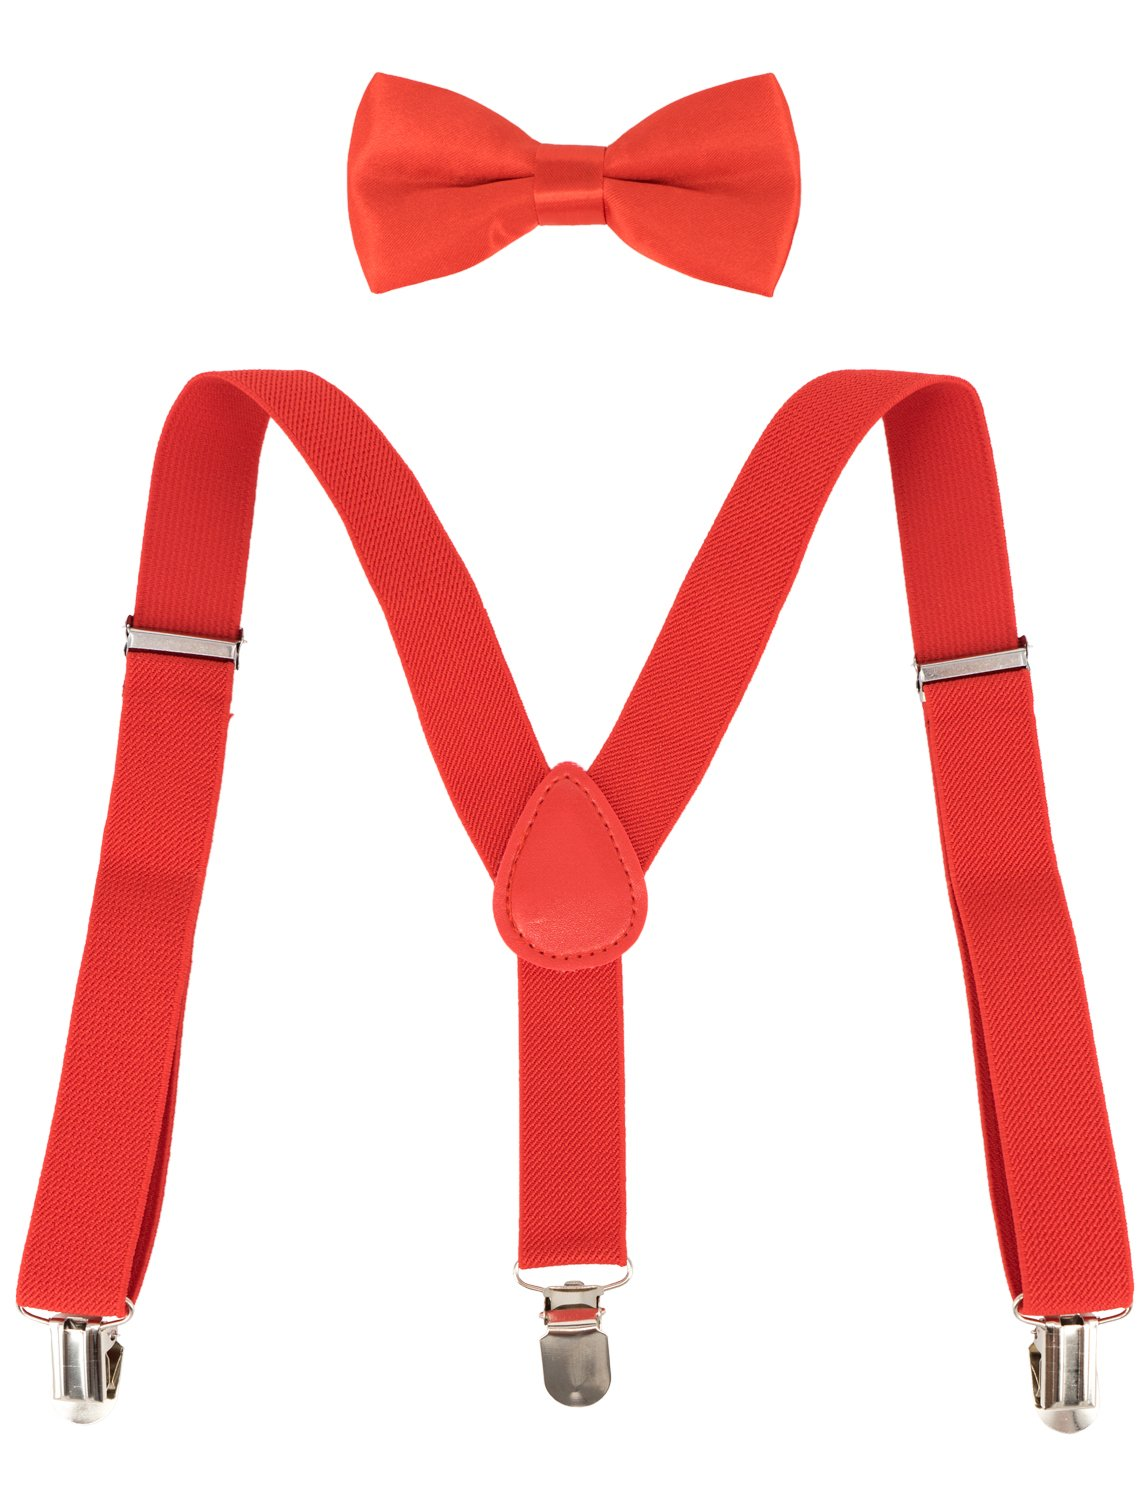 Ateid Children Kids Elasticated Braces with Bow Tie Clip-on Suspenders Set Y-shape for 1-7 Years